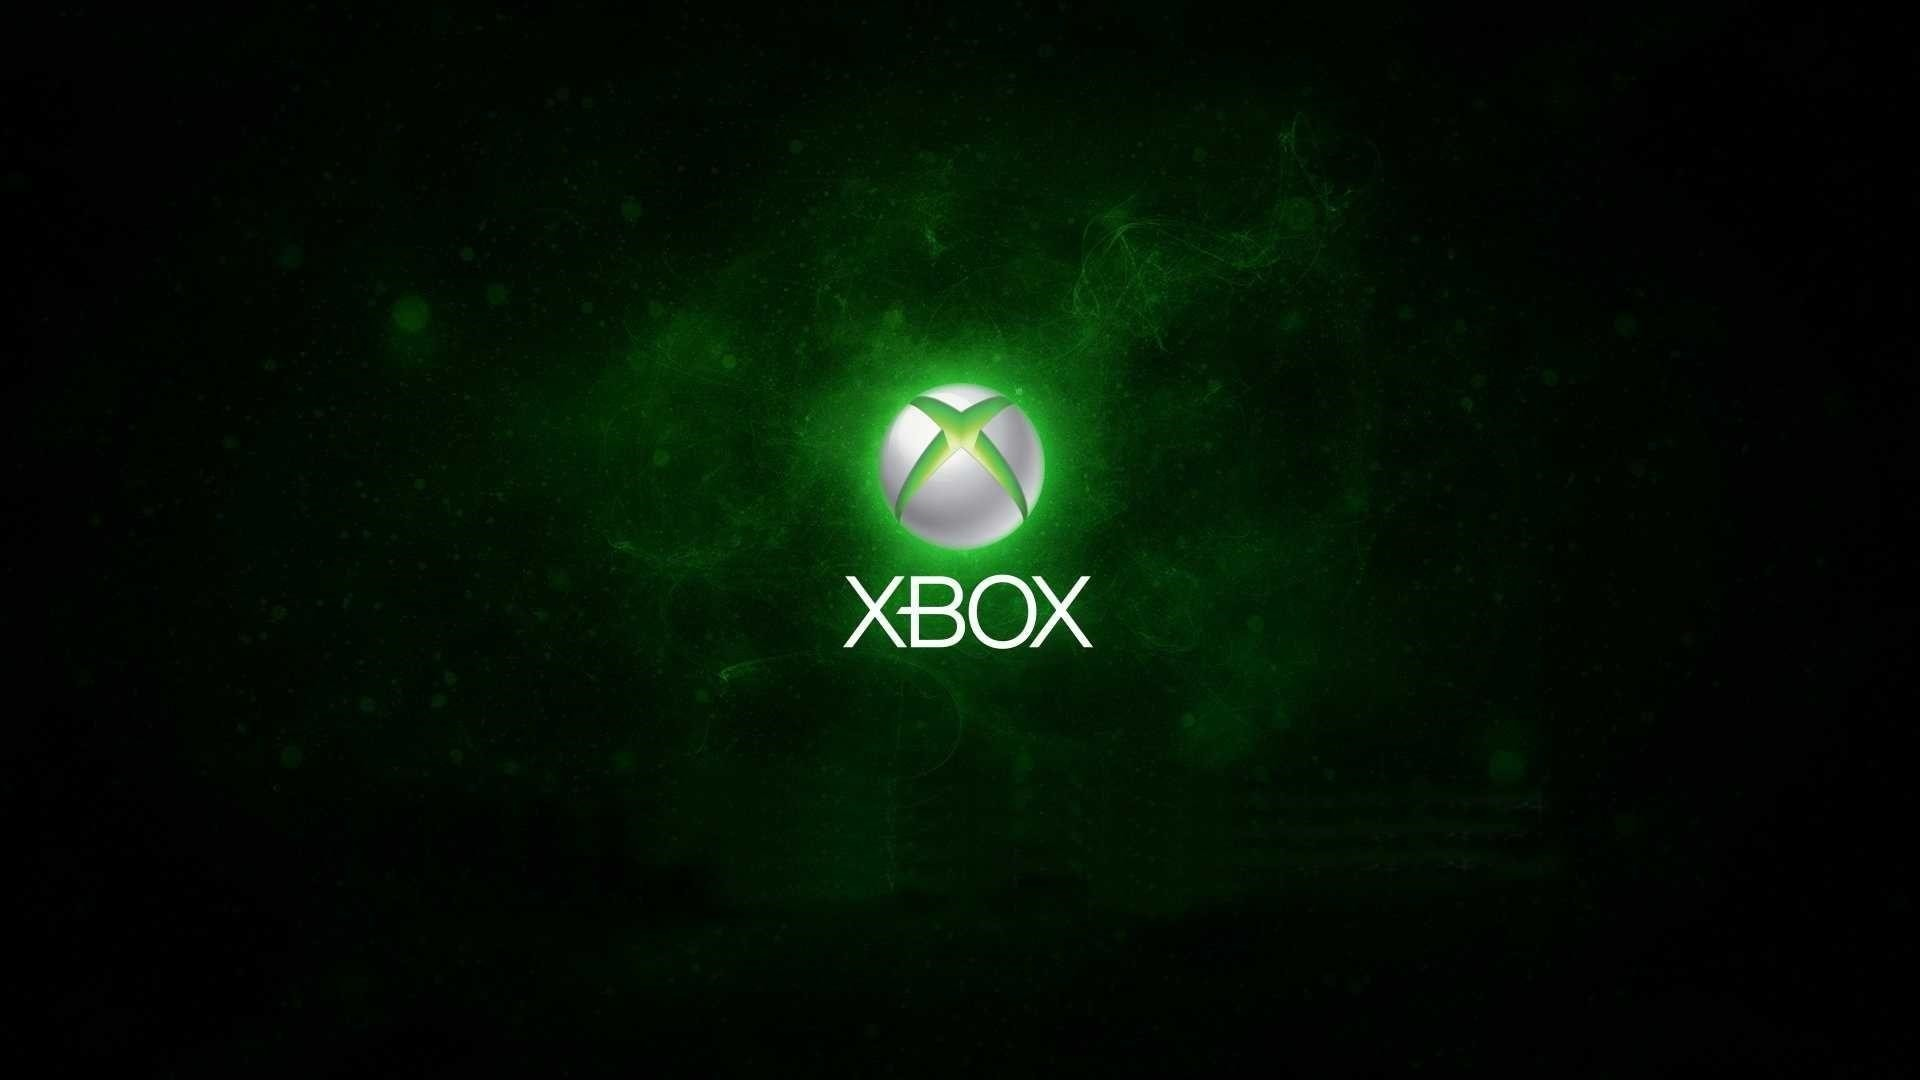 Xbox One Wallpaper Download